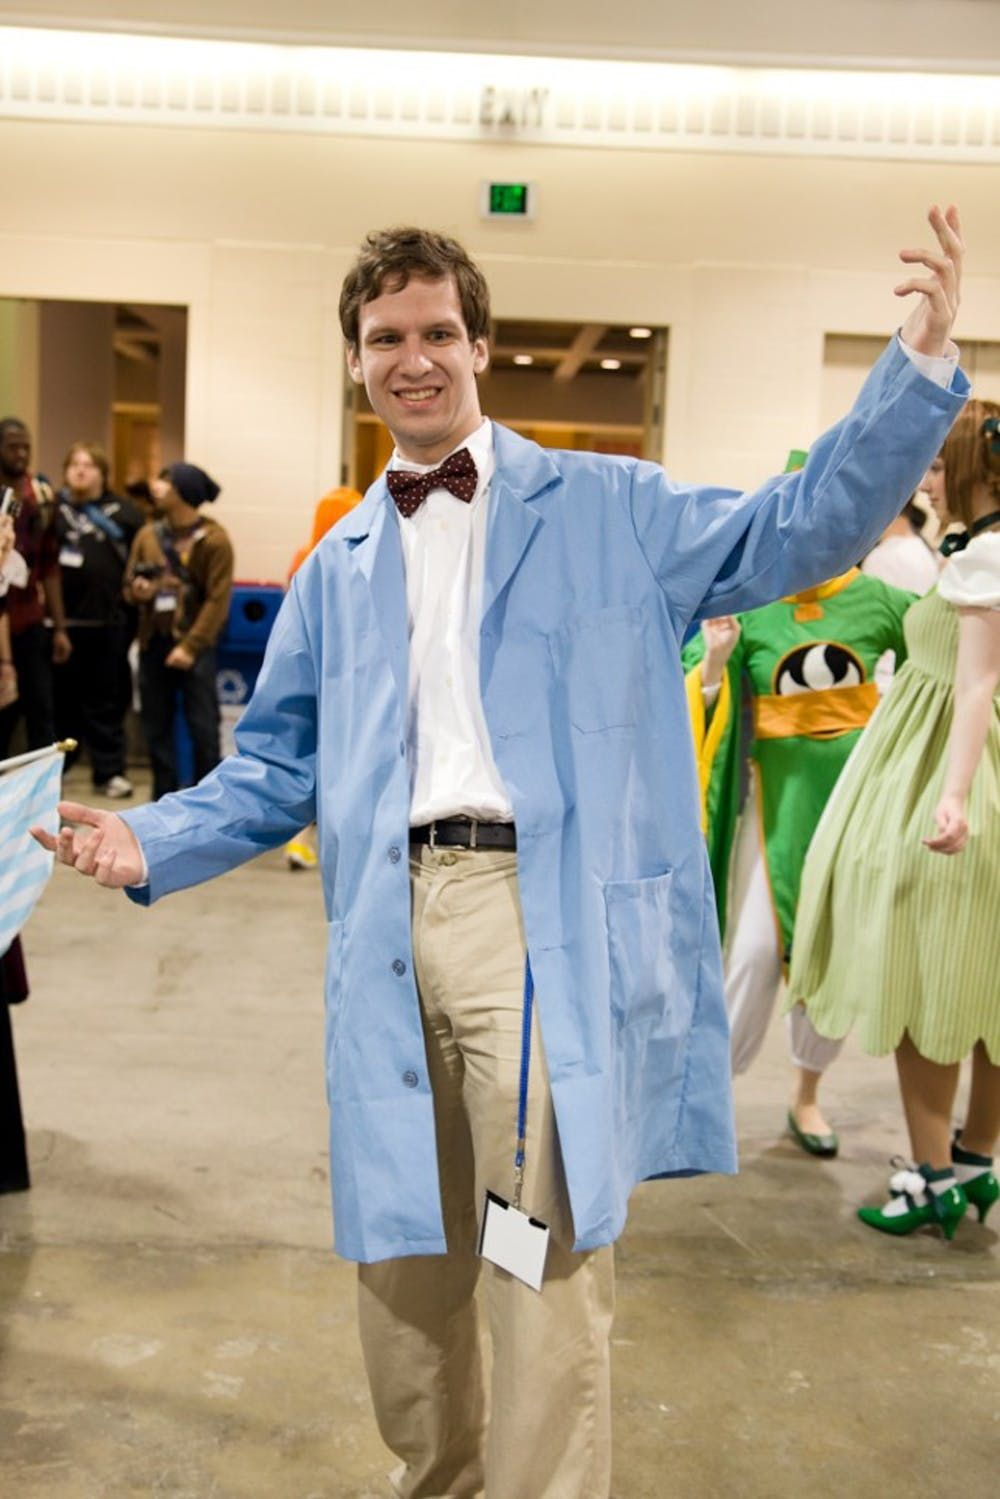 41 Awesome DIY Halloween Costume Ideas for Guys Projects